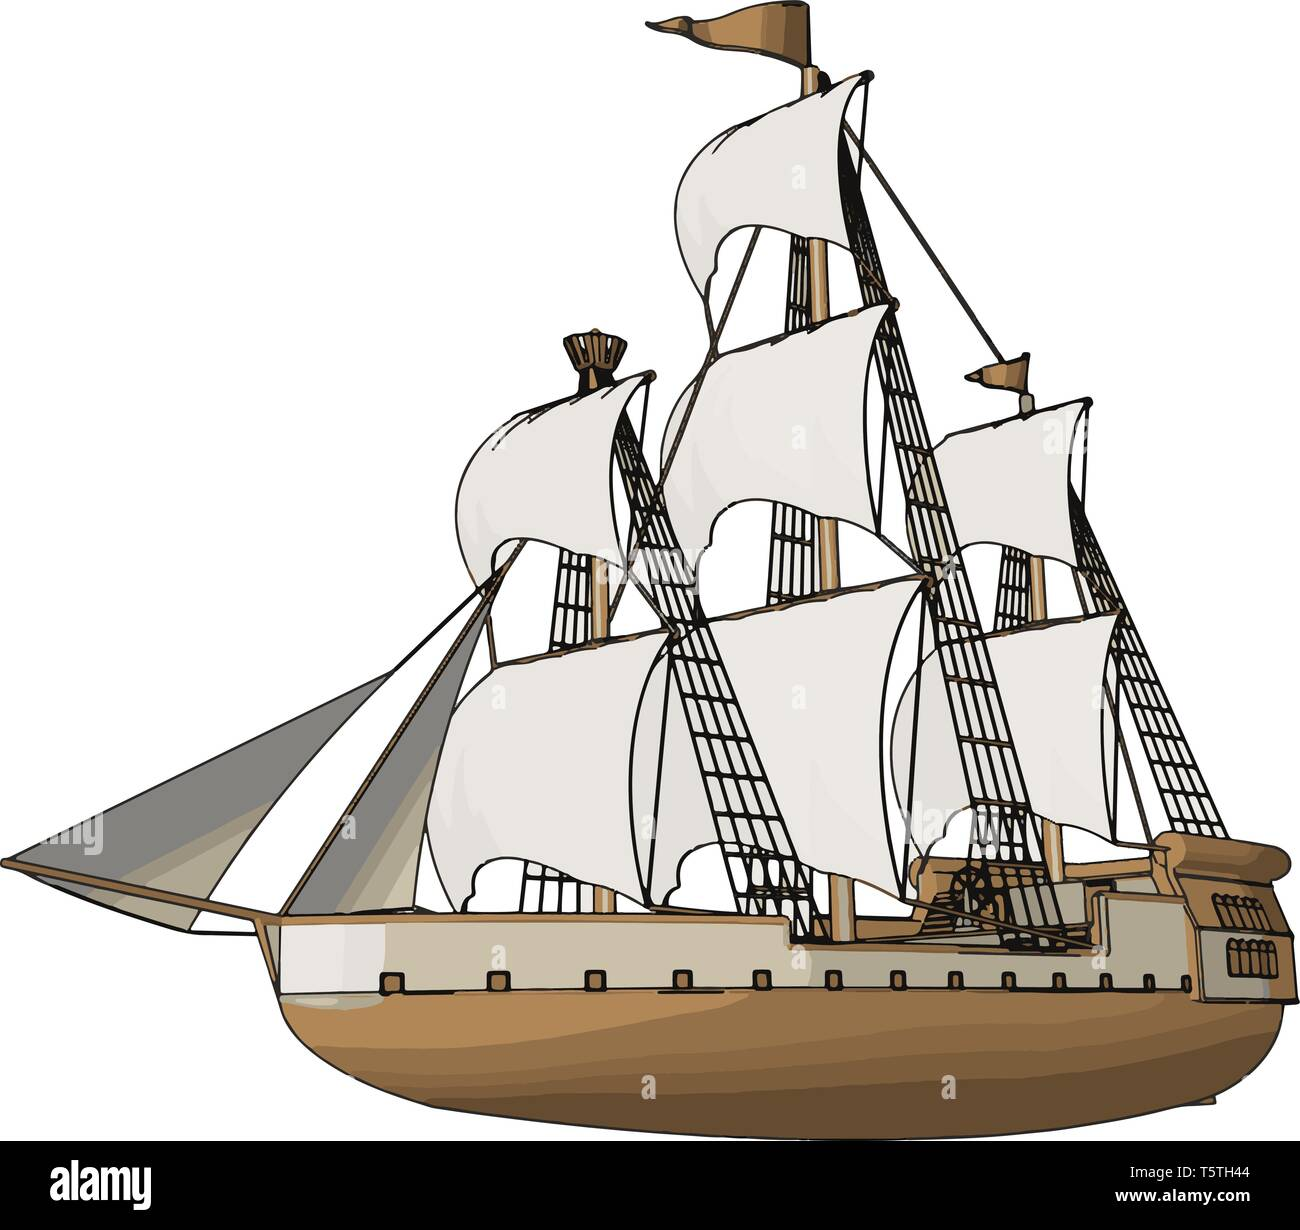 Simple vector illustration of an old sailing ship white backgorund - Stock Vector